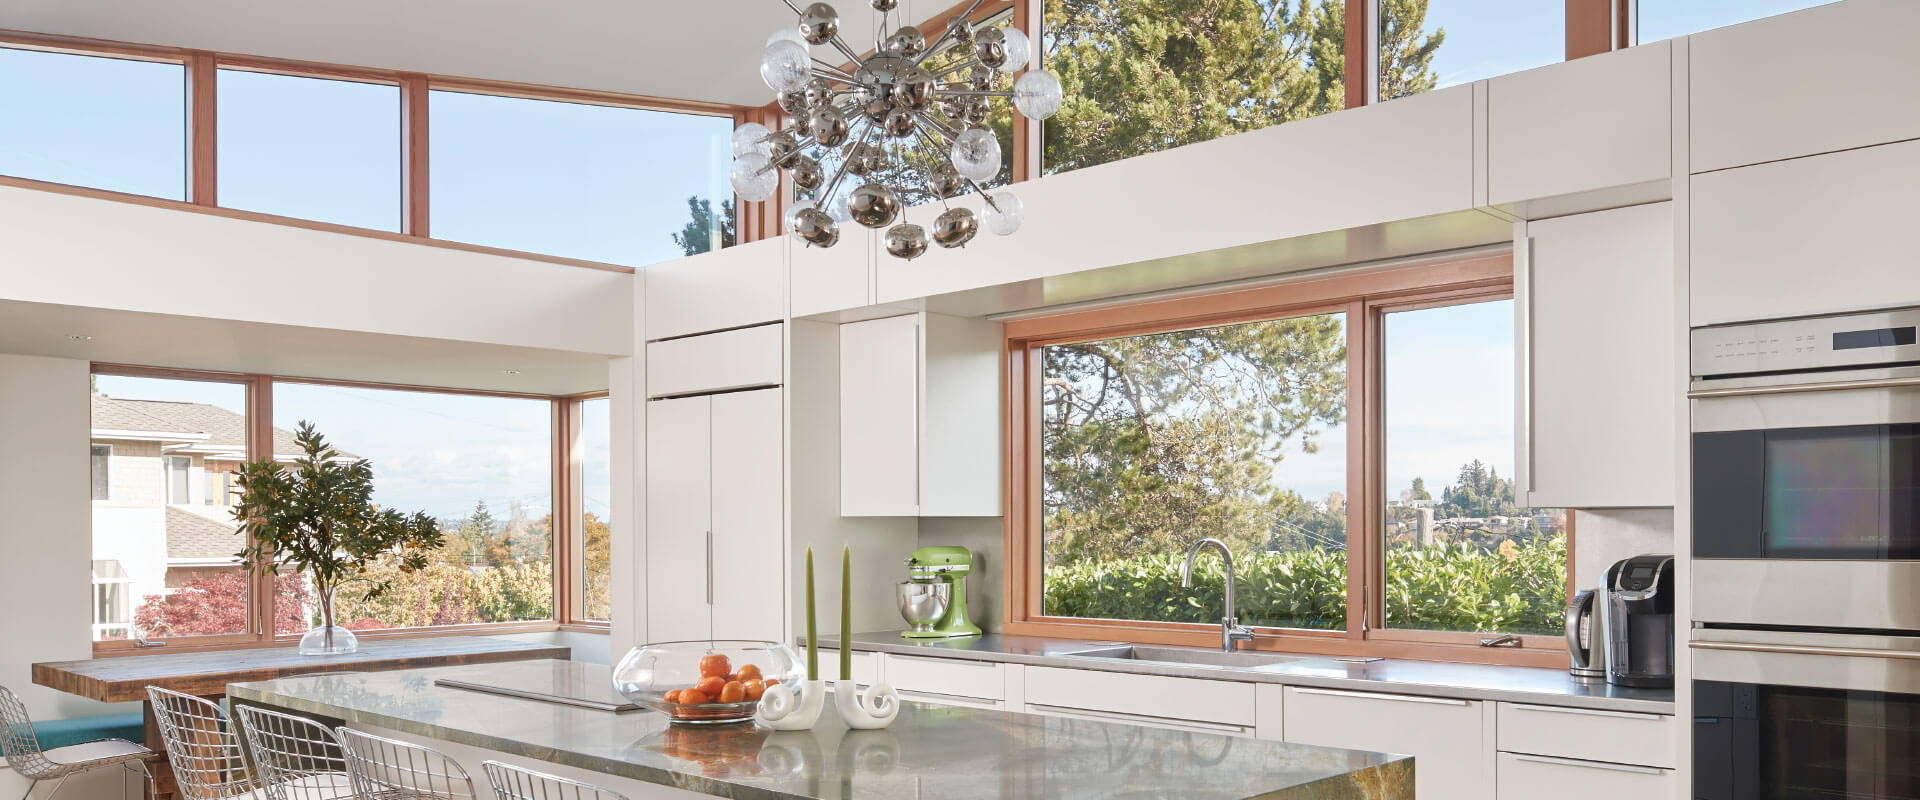 AC709 VistaLuxe Casements and Direct Sets